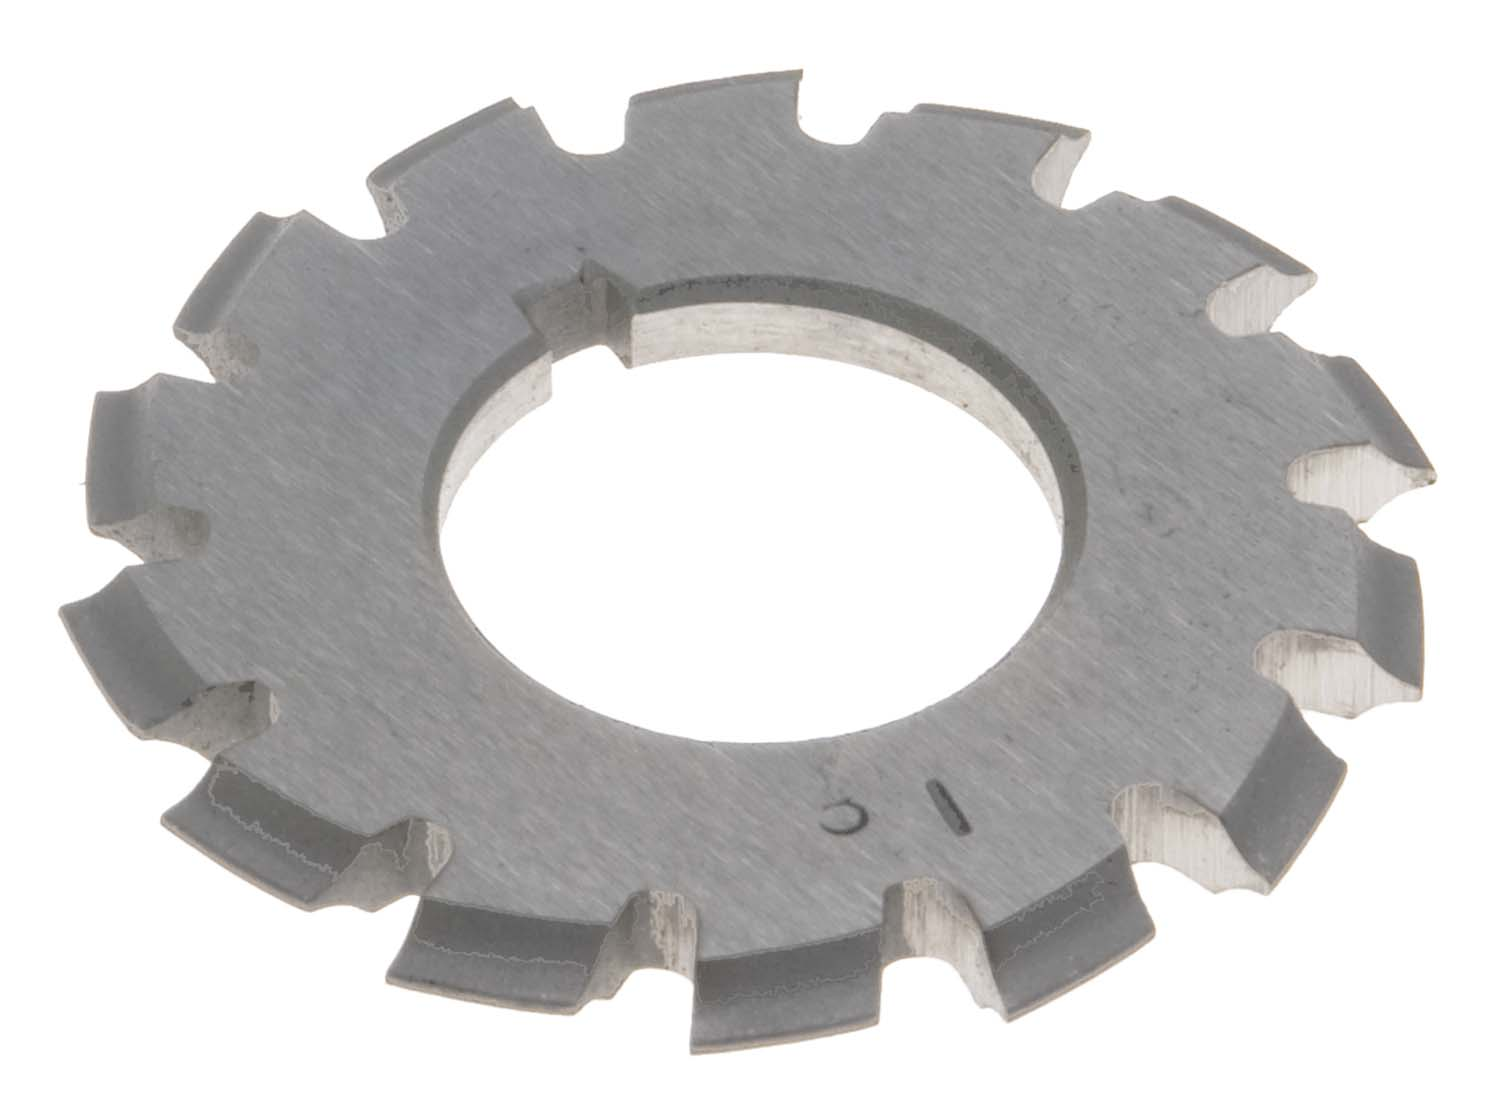 36 Diametral Pitch # 3  Involute Gear Cutter - 7/8 ID - 14-1/2 Degree Pressure Angle